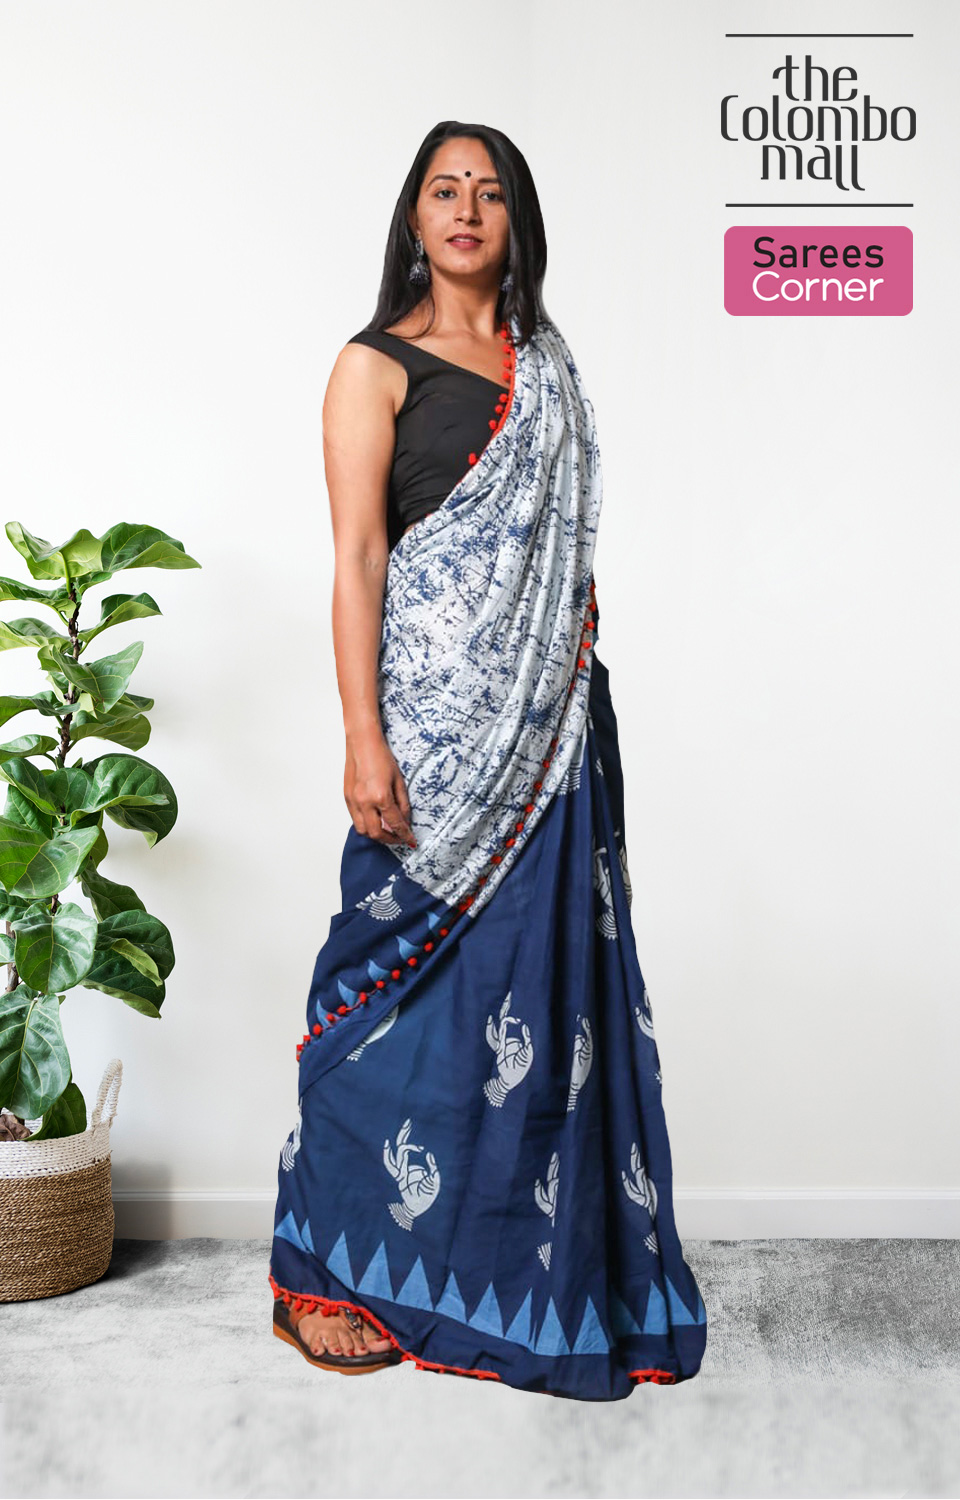 White and Blue Printed Handloom Cotton Saree with Red Tassels in Sri Lanka